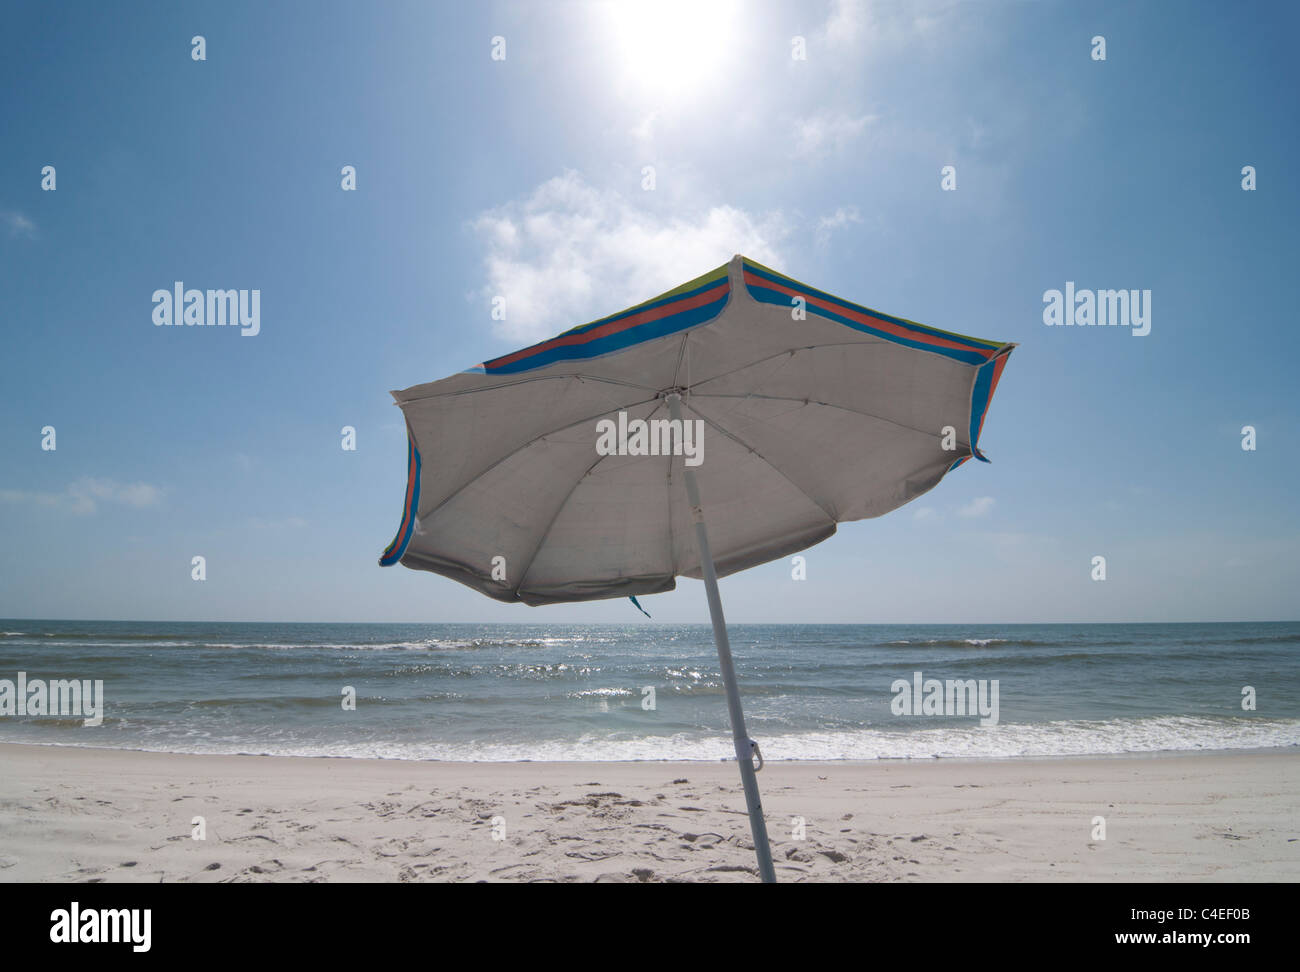 Gulf beaches along Florida's Panhandle at St. Joseph Peninsula State Park. Beach umbrella Stock Photo